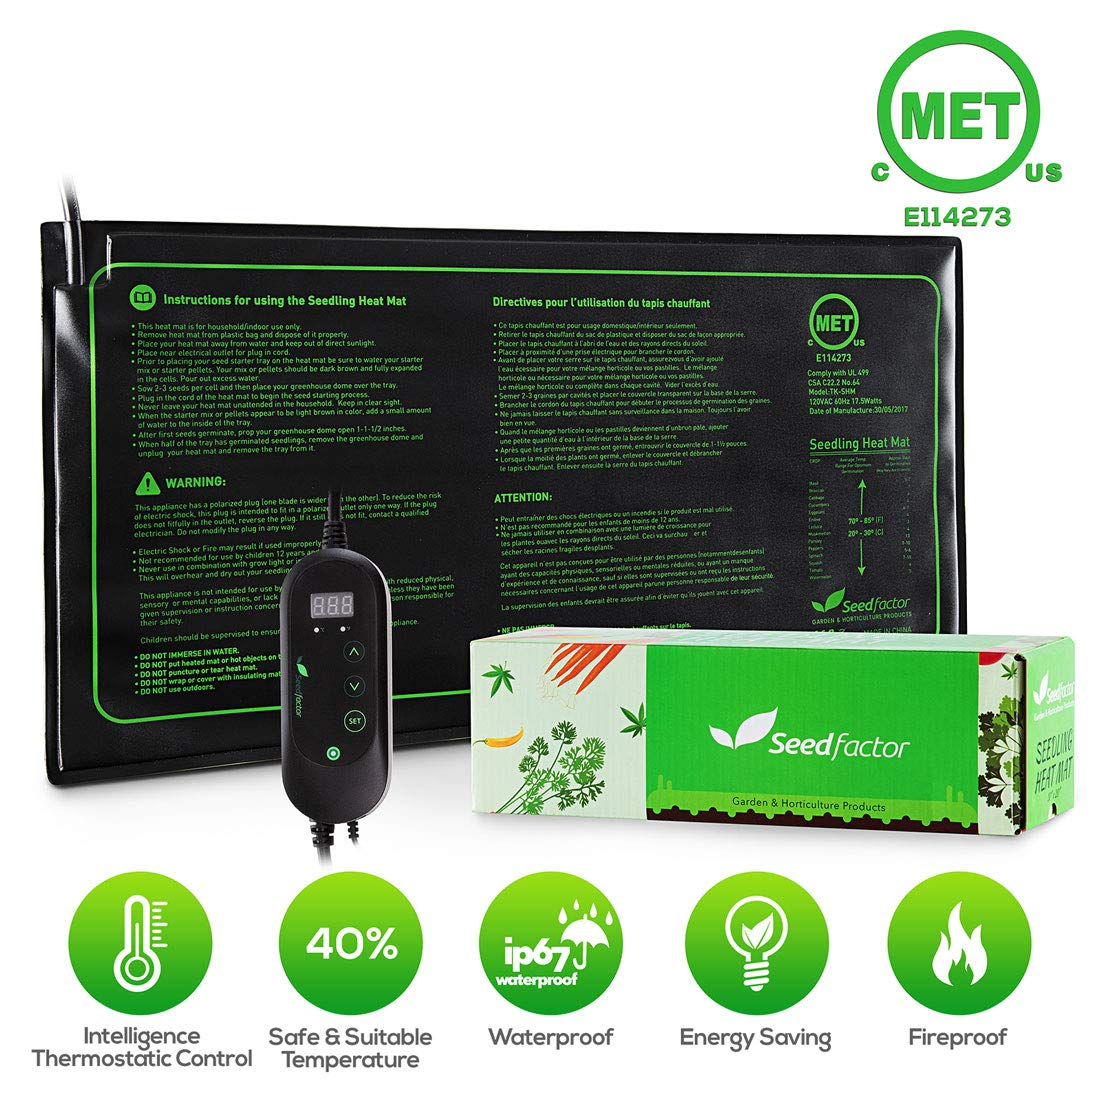 Seedfactor MET certified Seedling Heat Mat with 50℉~108℉ Digital Thermostat Controller for Seed Germination (10'' x 20'')